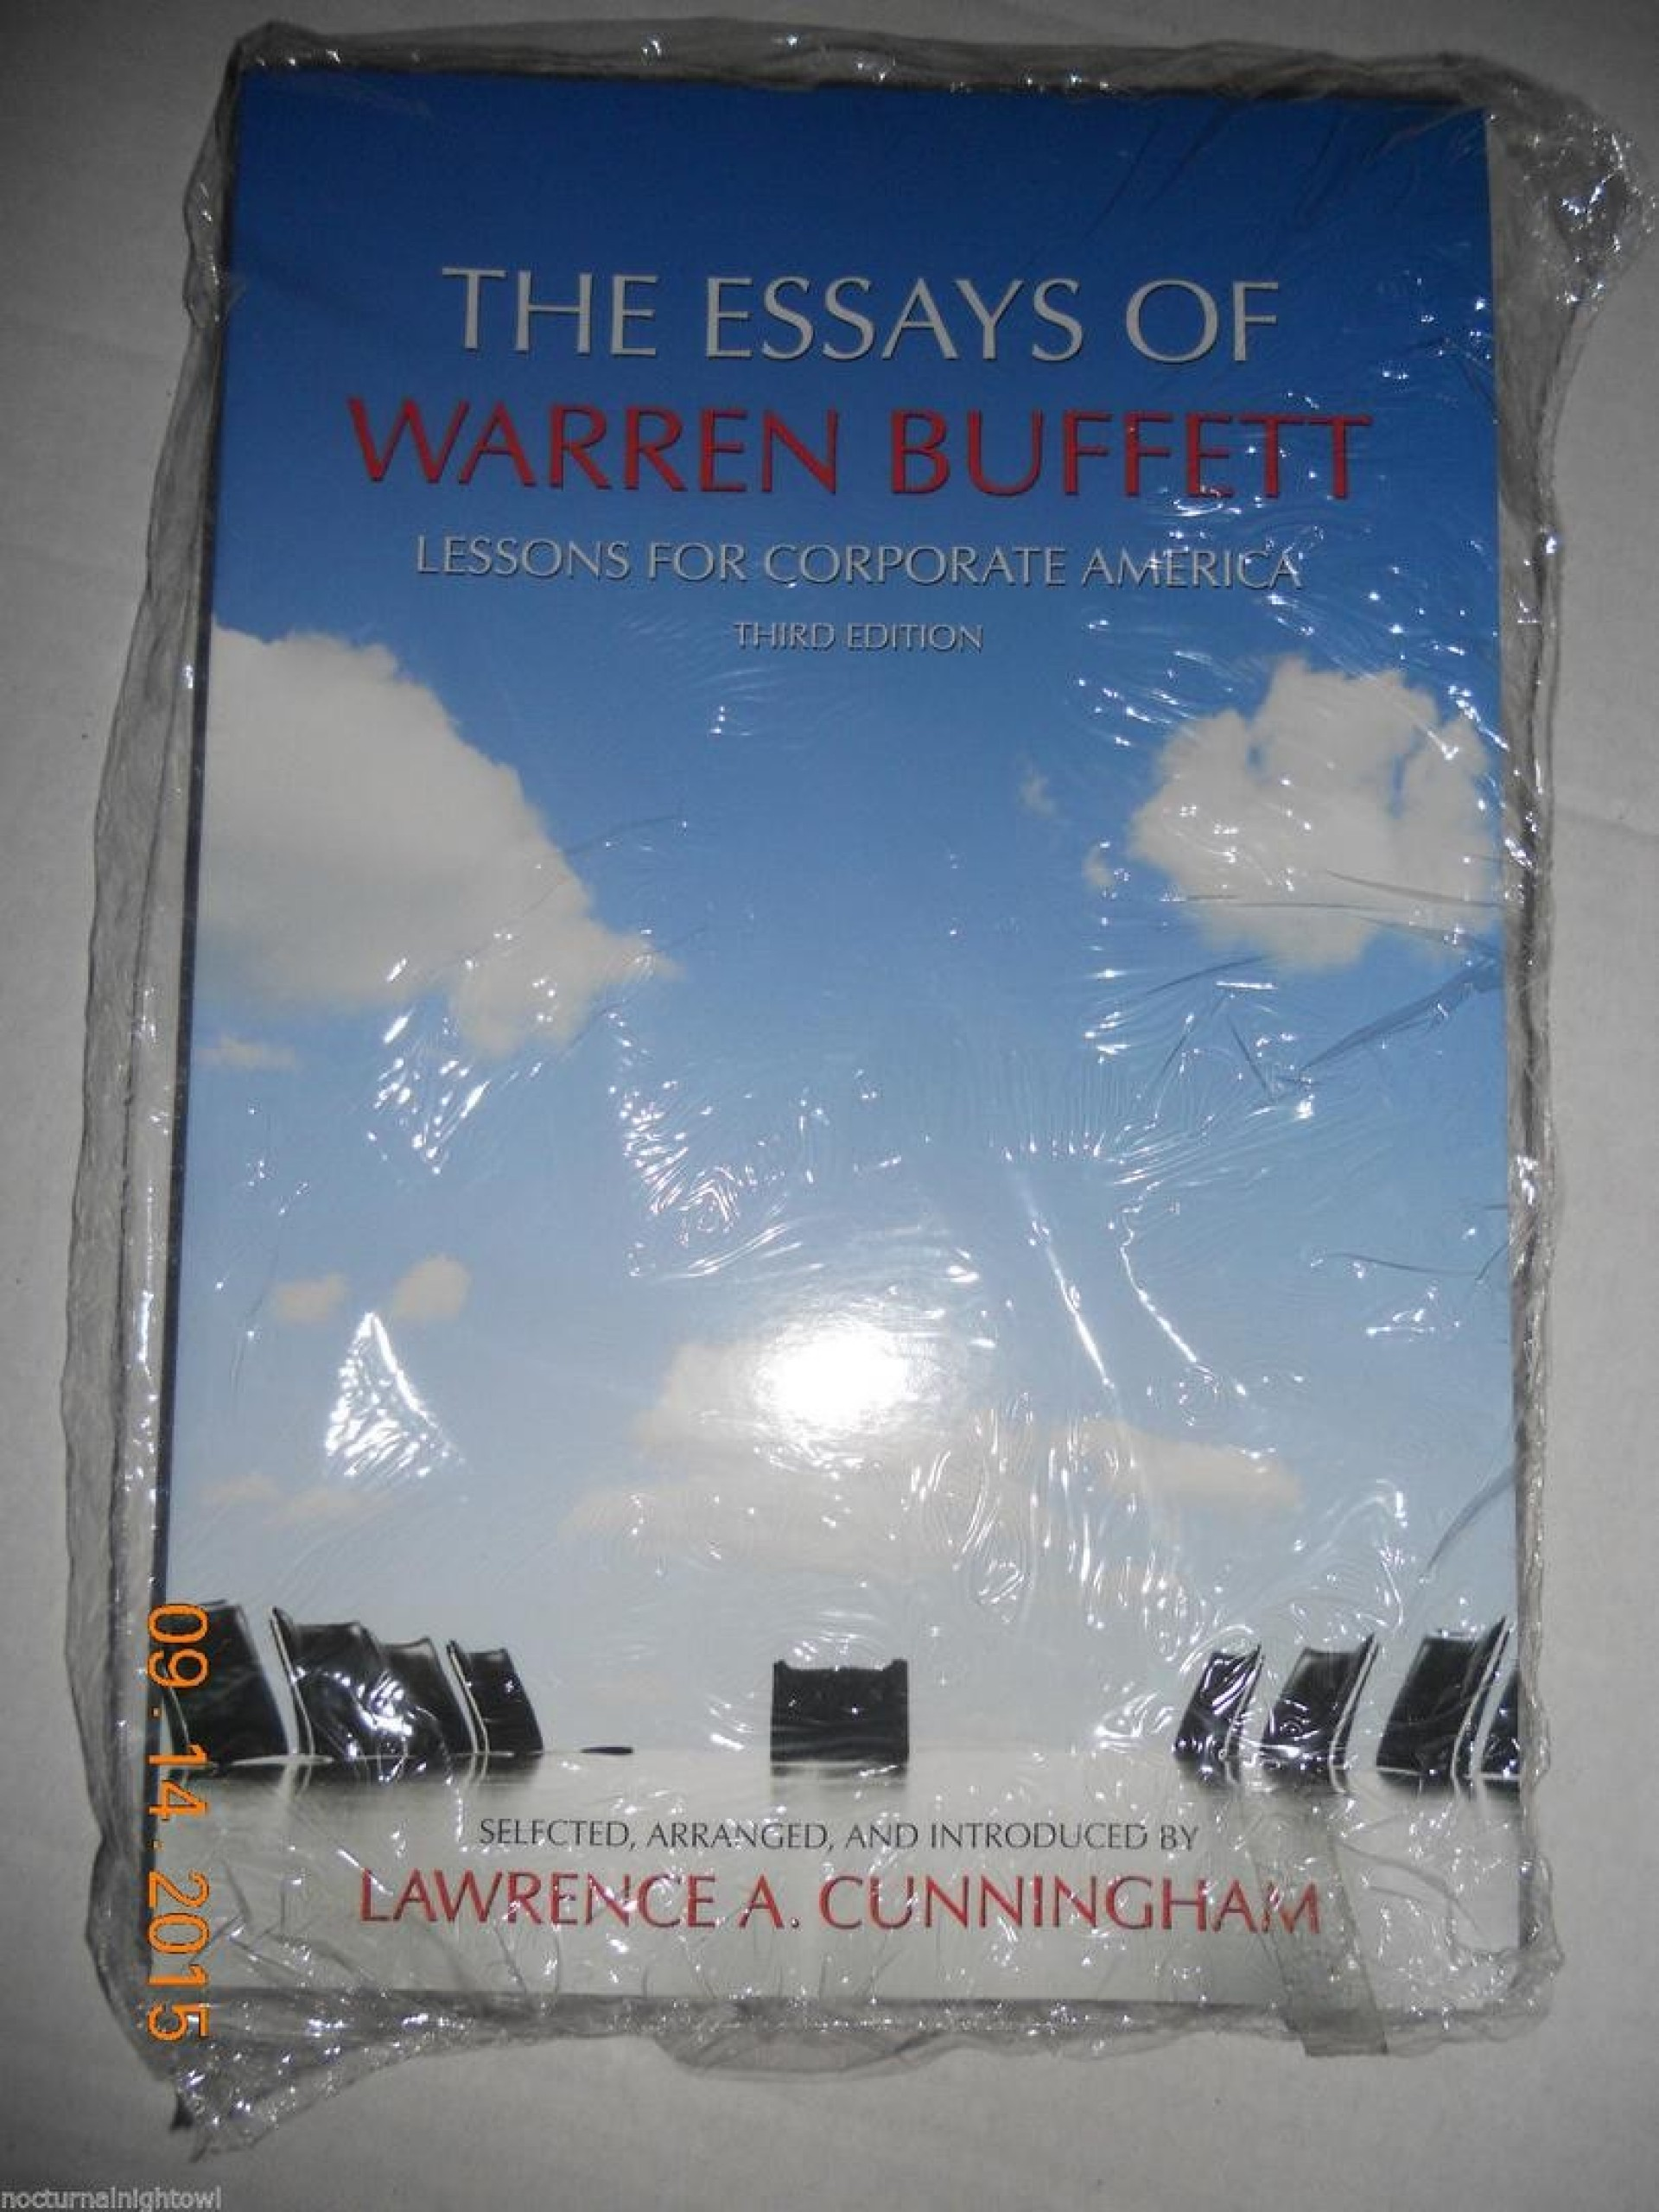 024 Essay Example 1 0b1c1ea30173ee0ca42df663c49fe933 The Essays Of Warren Buffett Lessons For Corporate Remarkable America Third Edition 3rd Second Pdf Audio Book 1920